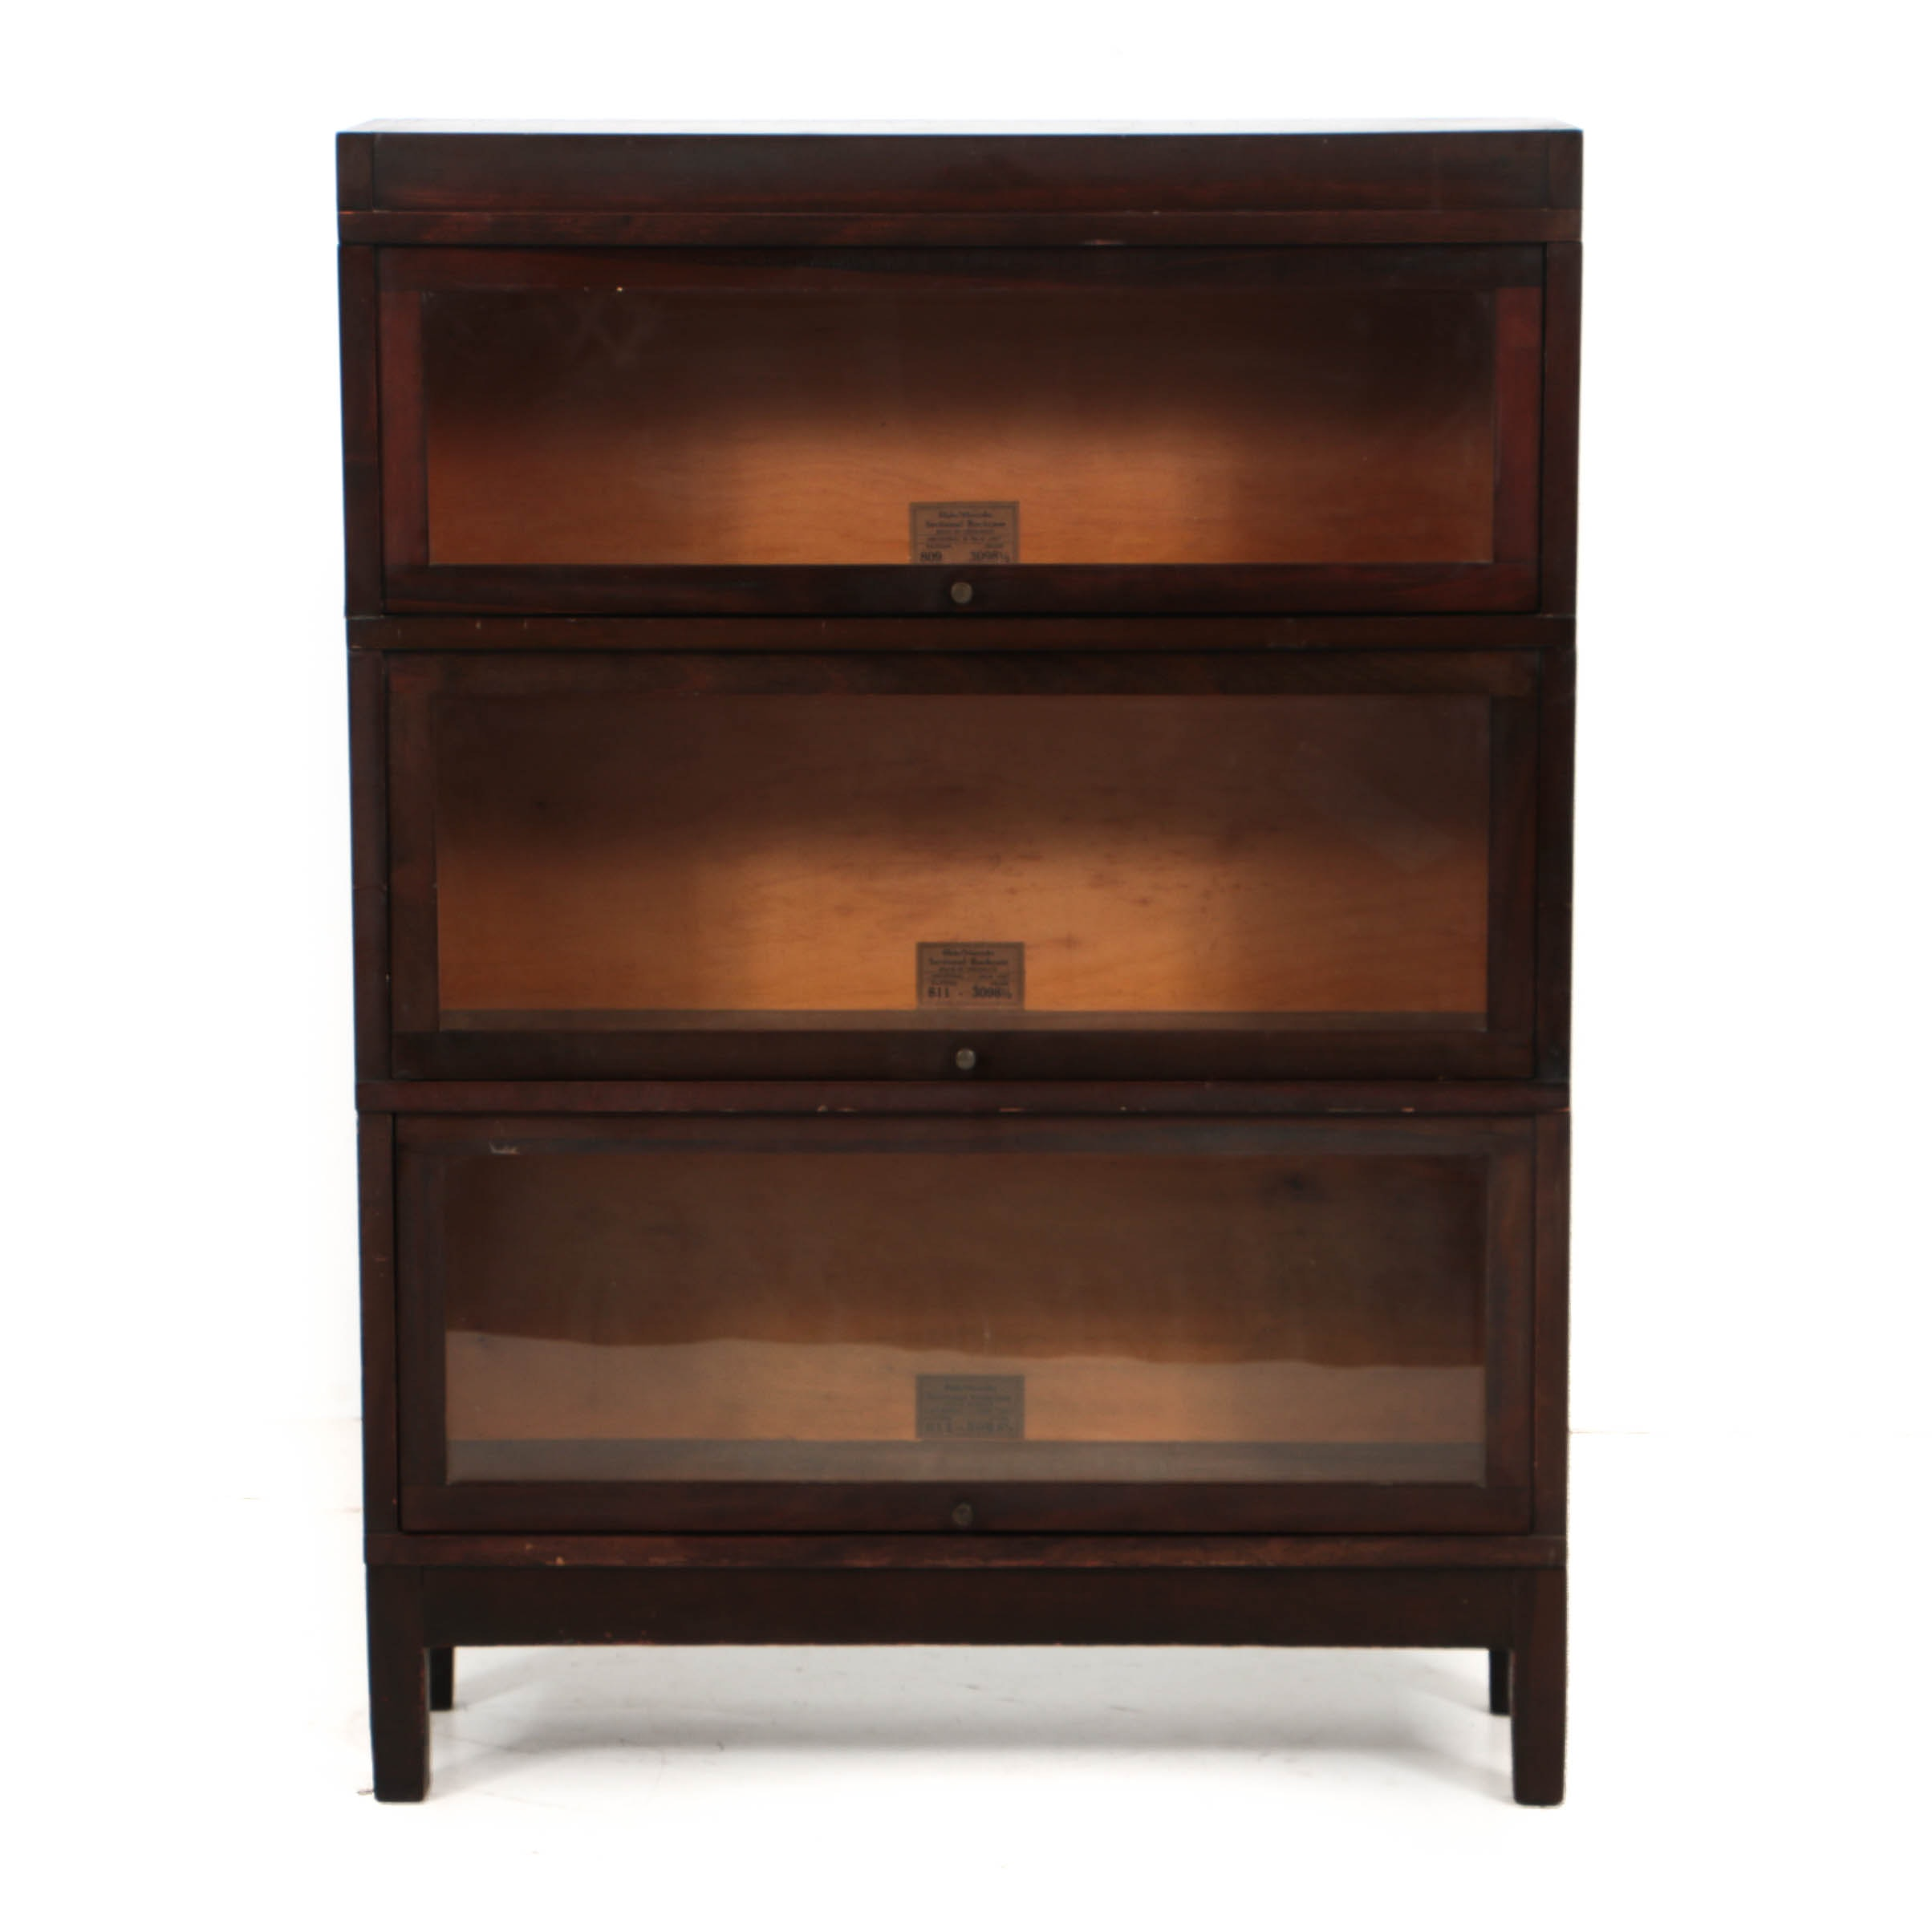 Vintage Three-Section Barrister's Bookcase by Globe-Wernicke